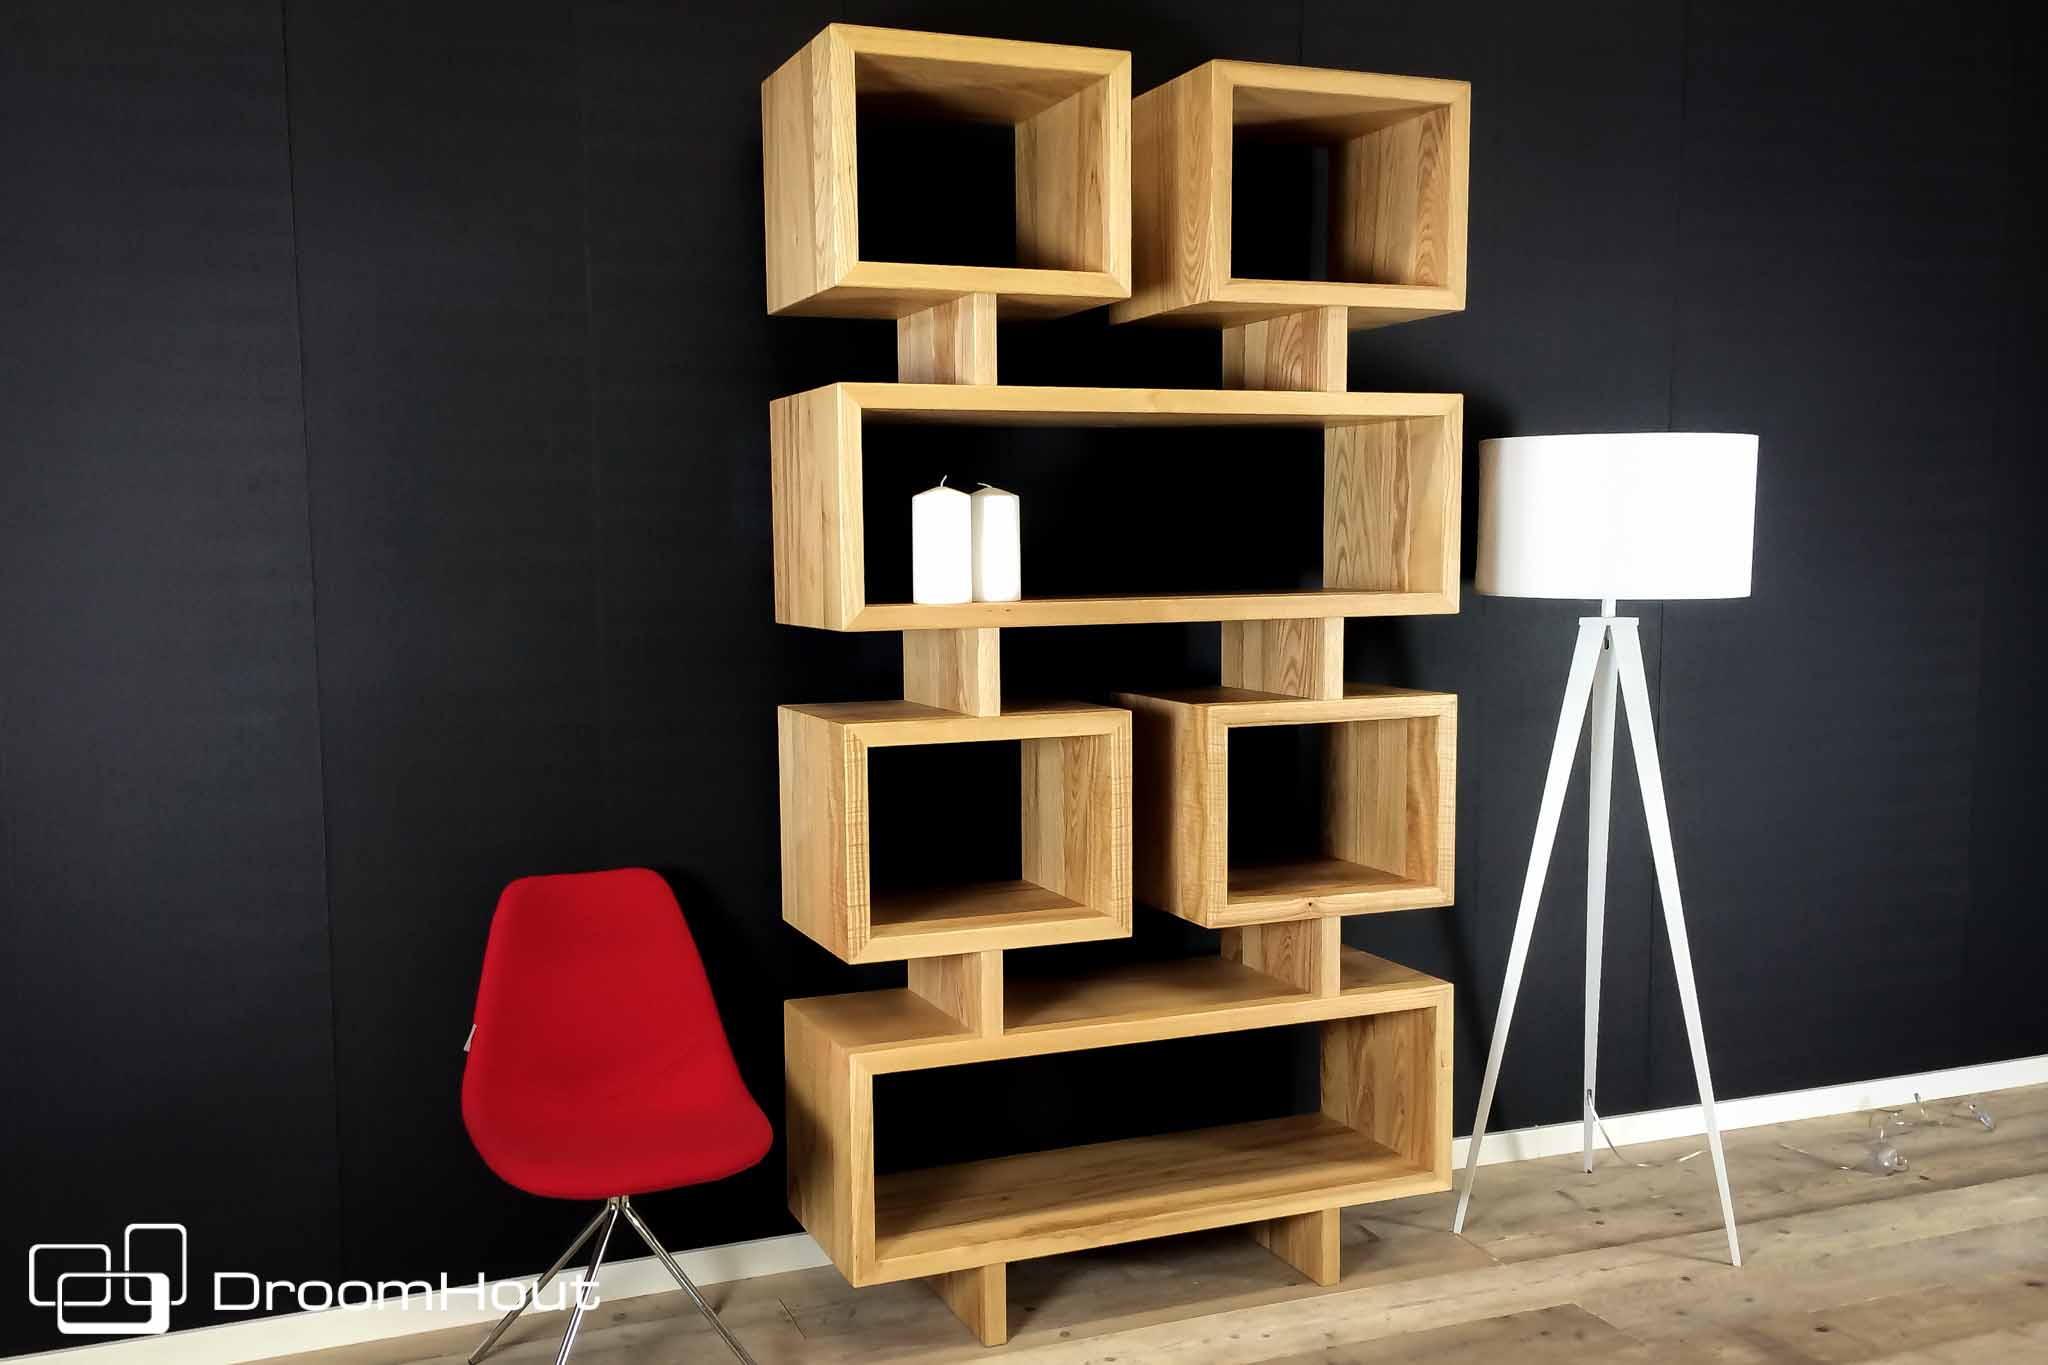 Roomdivider kast Balance (limited edition)